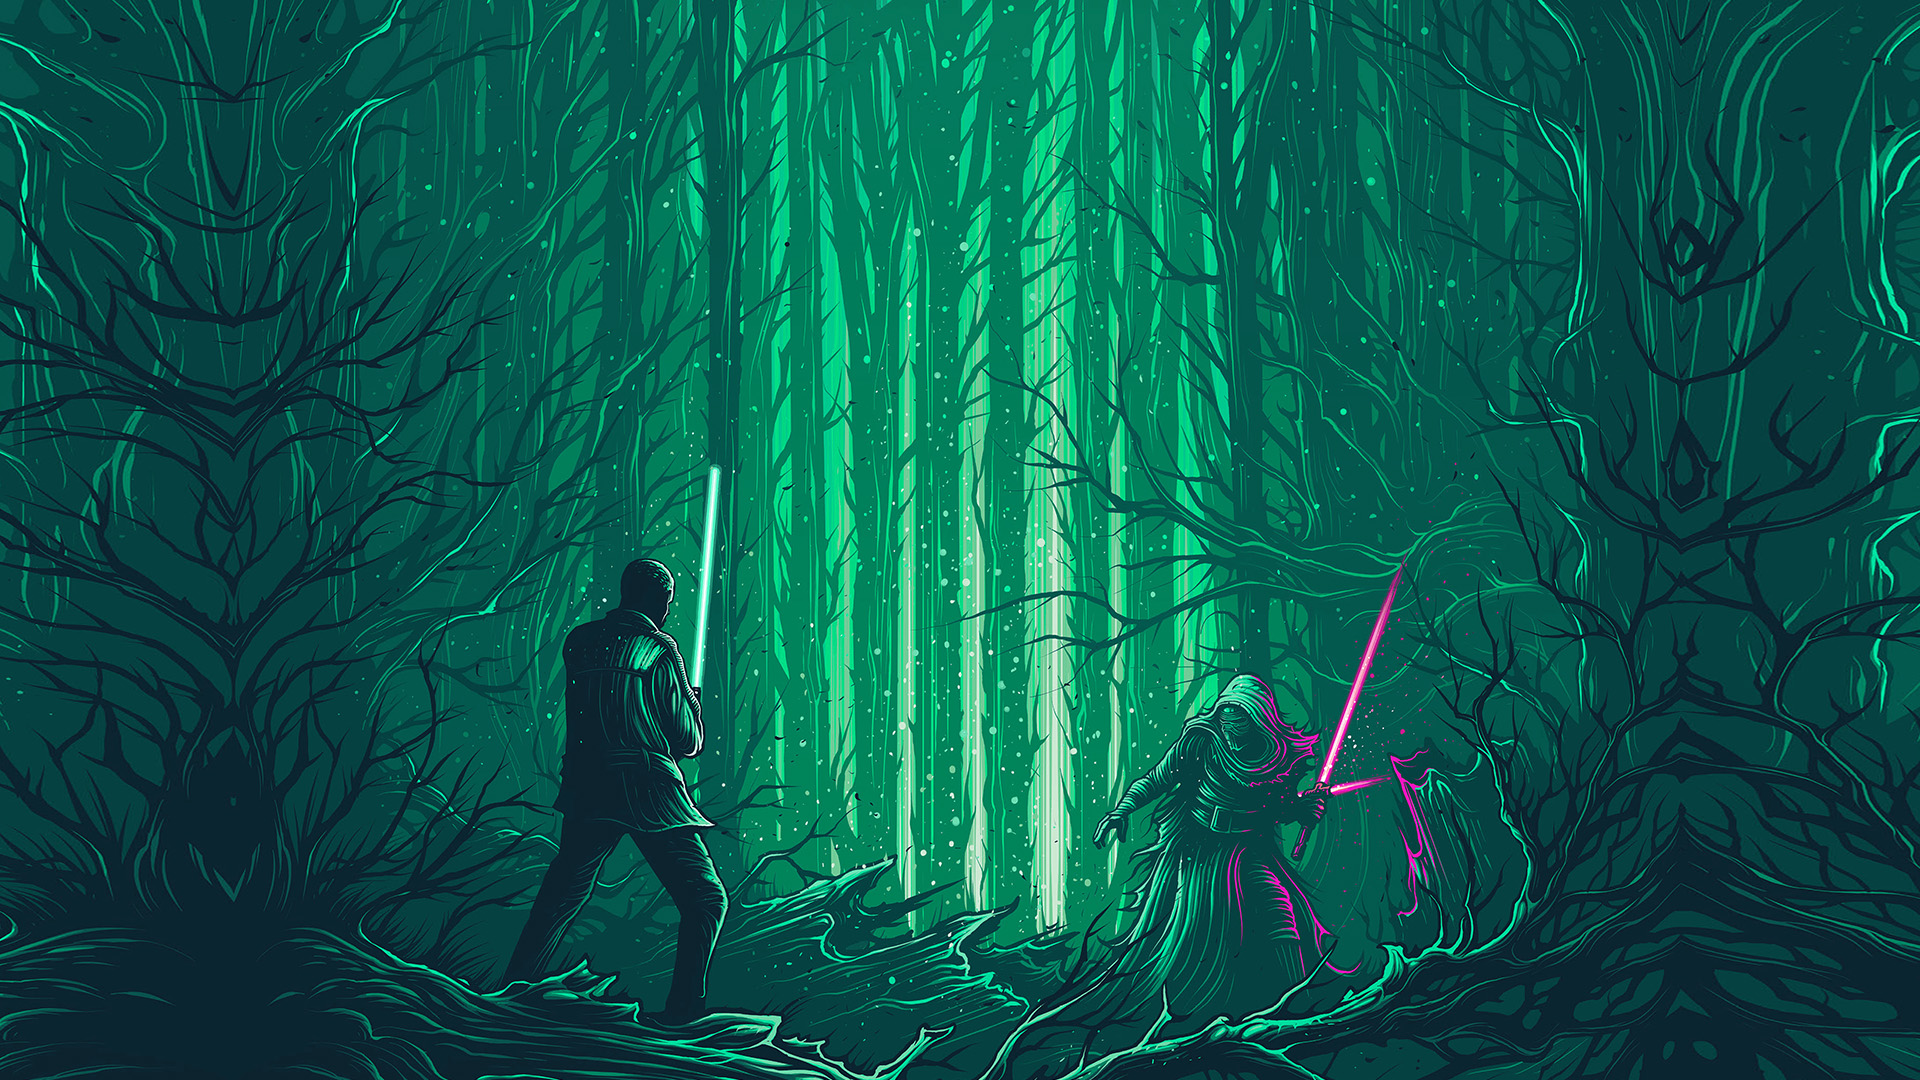 Ap47 Starwars Illustration Green Art Film Wallpaper